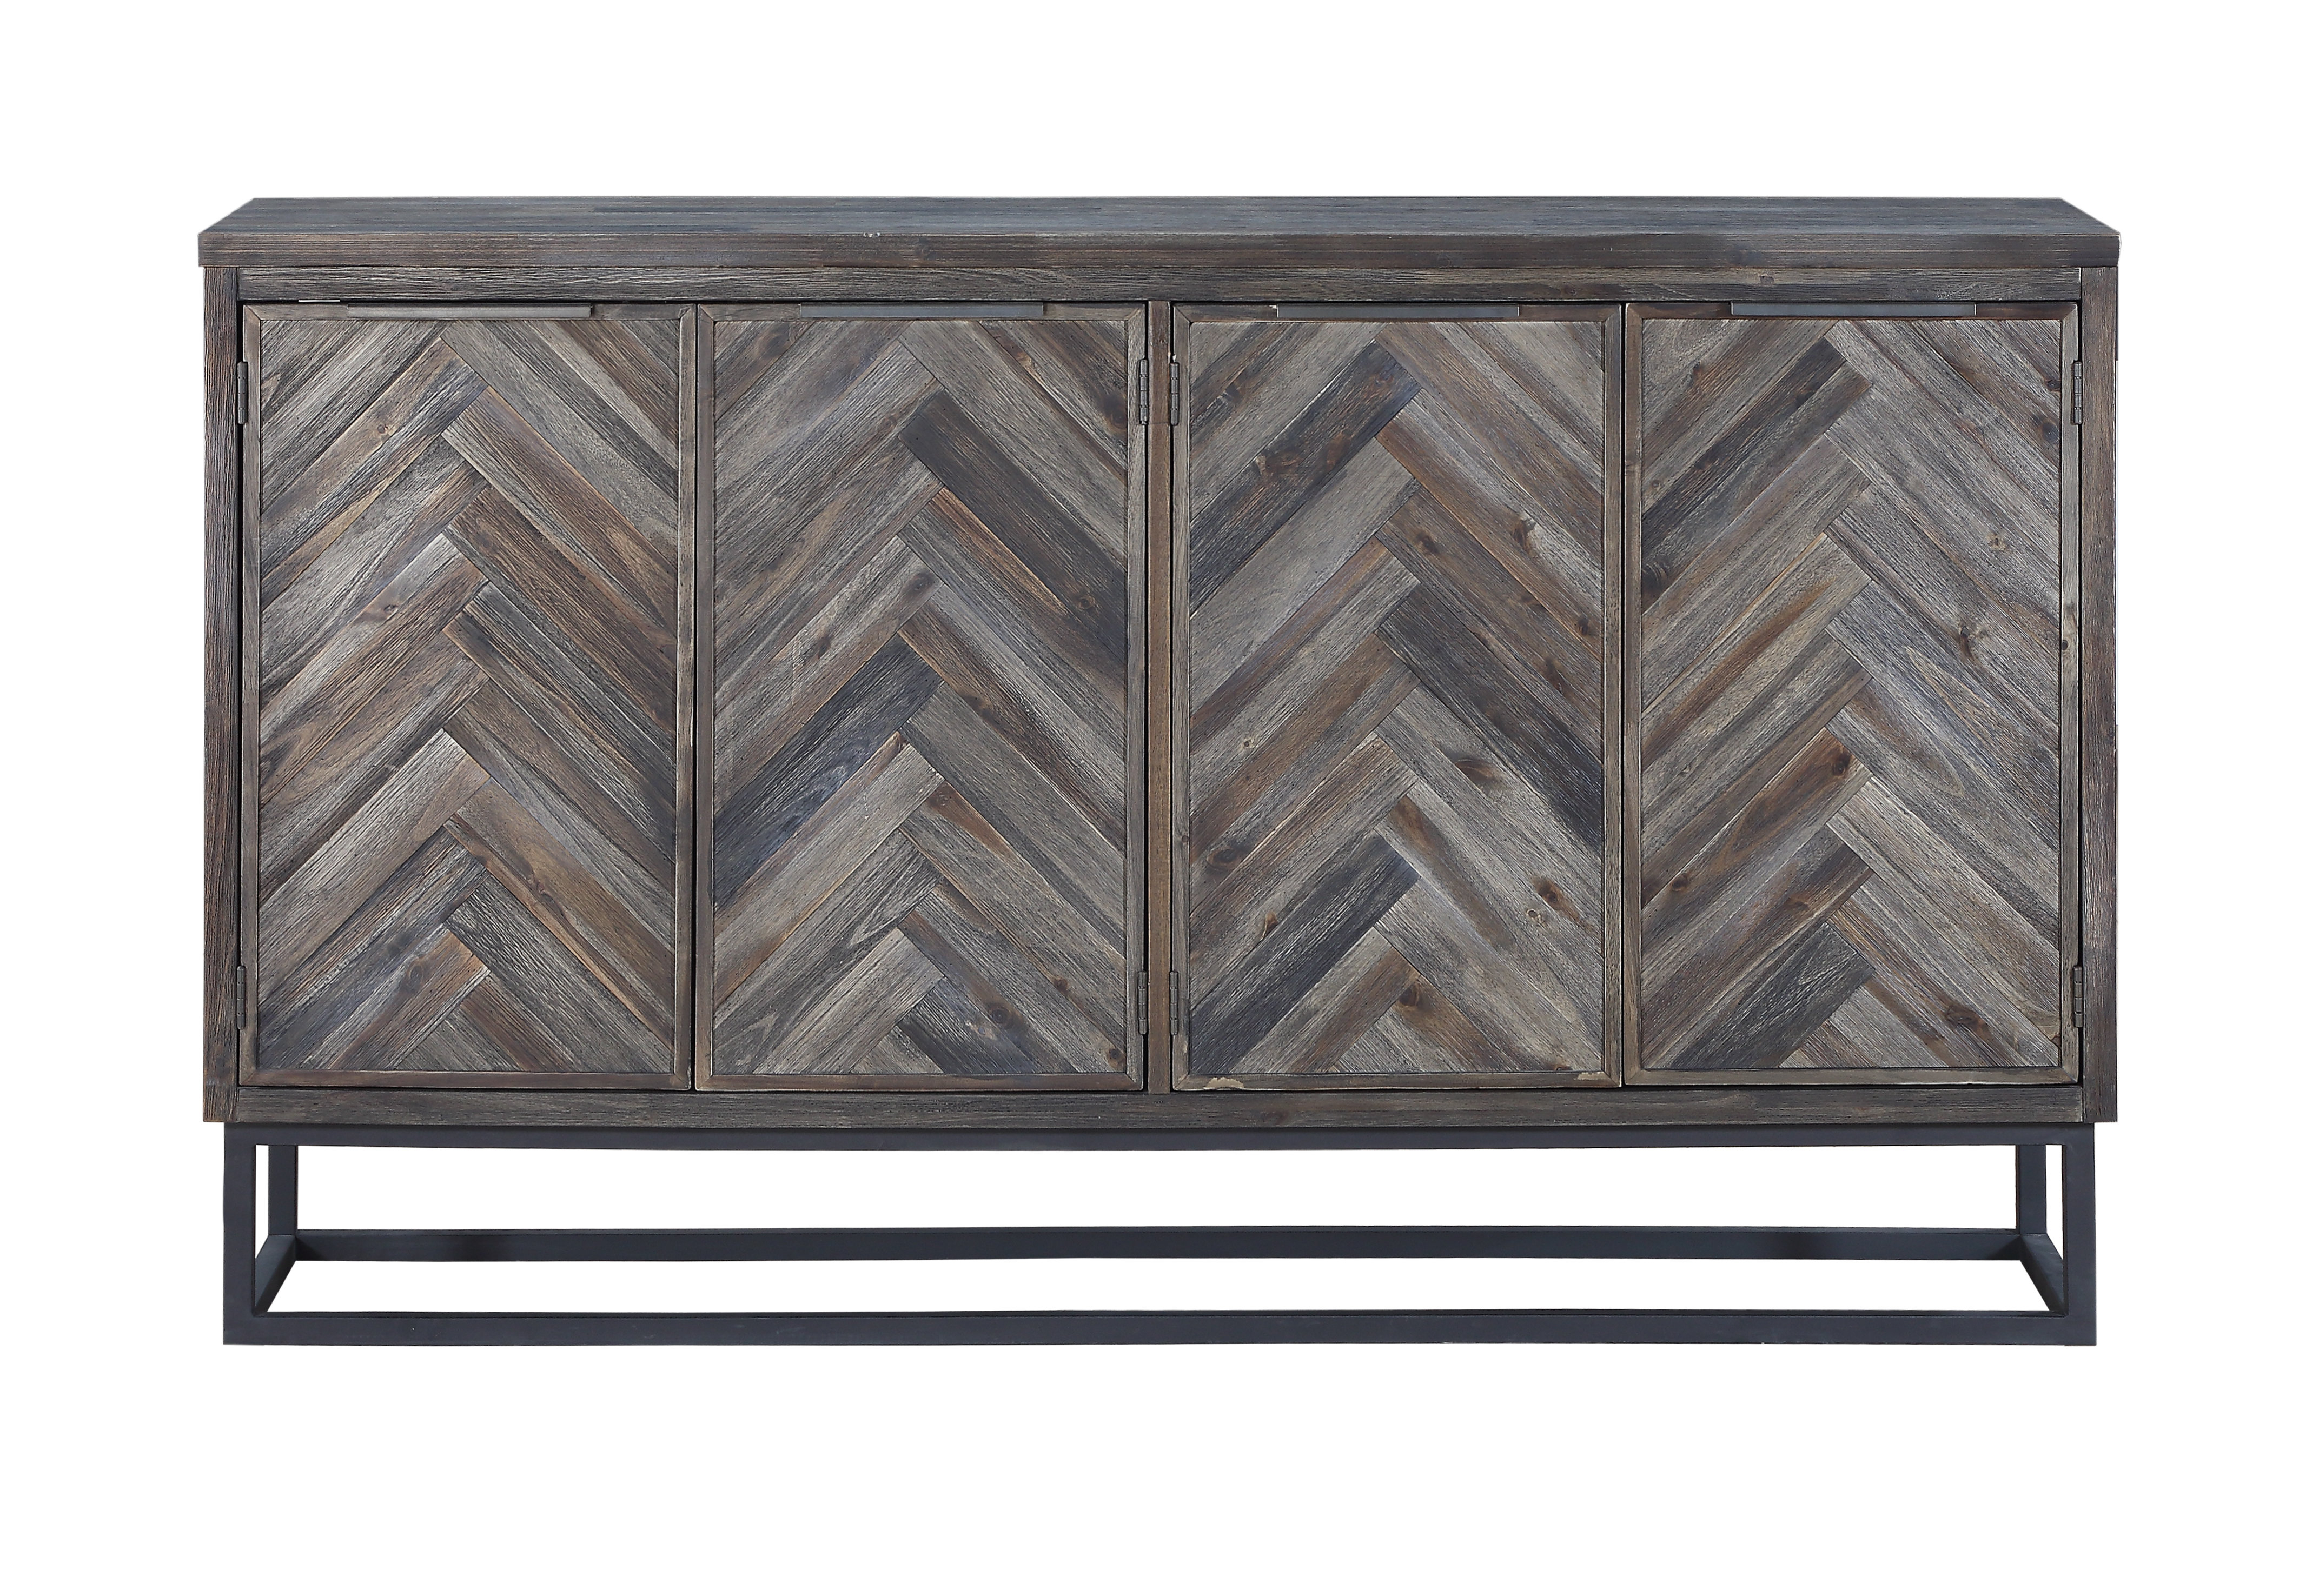 Modern & Contemporary Deny Credenza | Allmodern Pertaining To Lainey Credenzas (View 7 of 20)